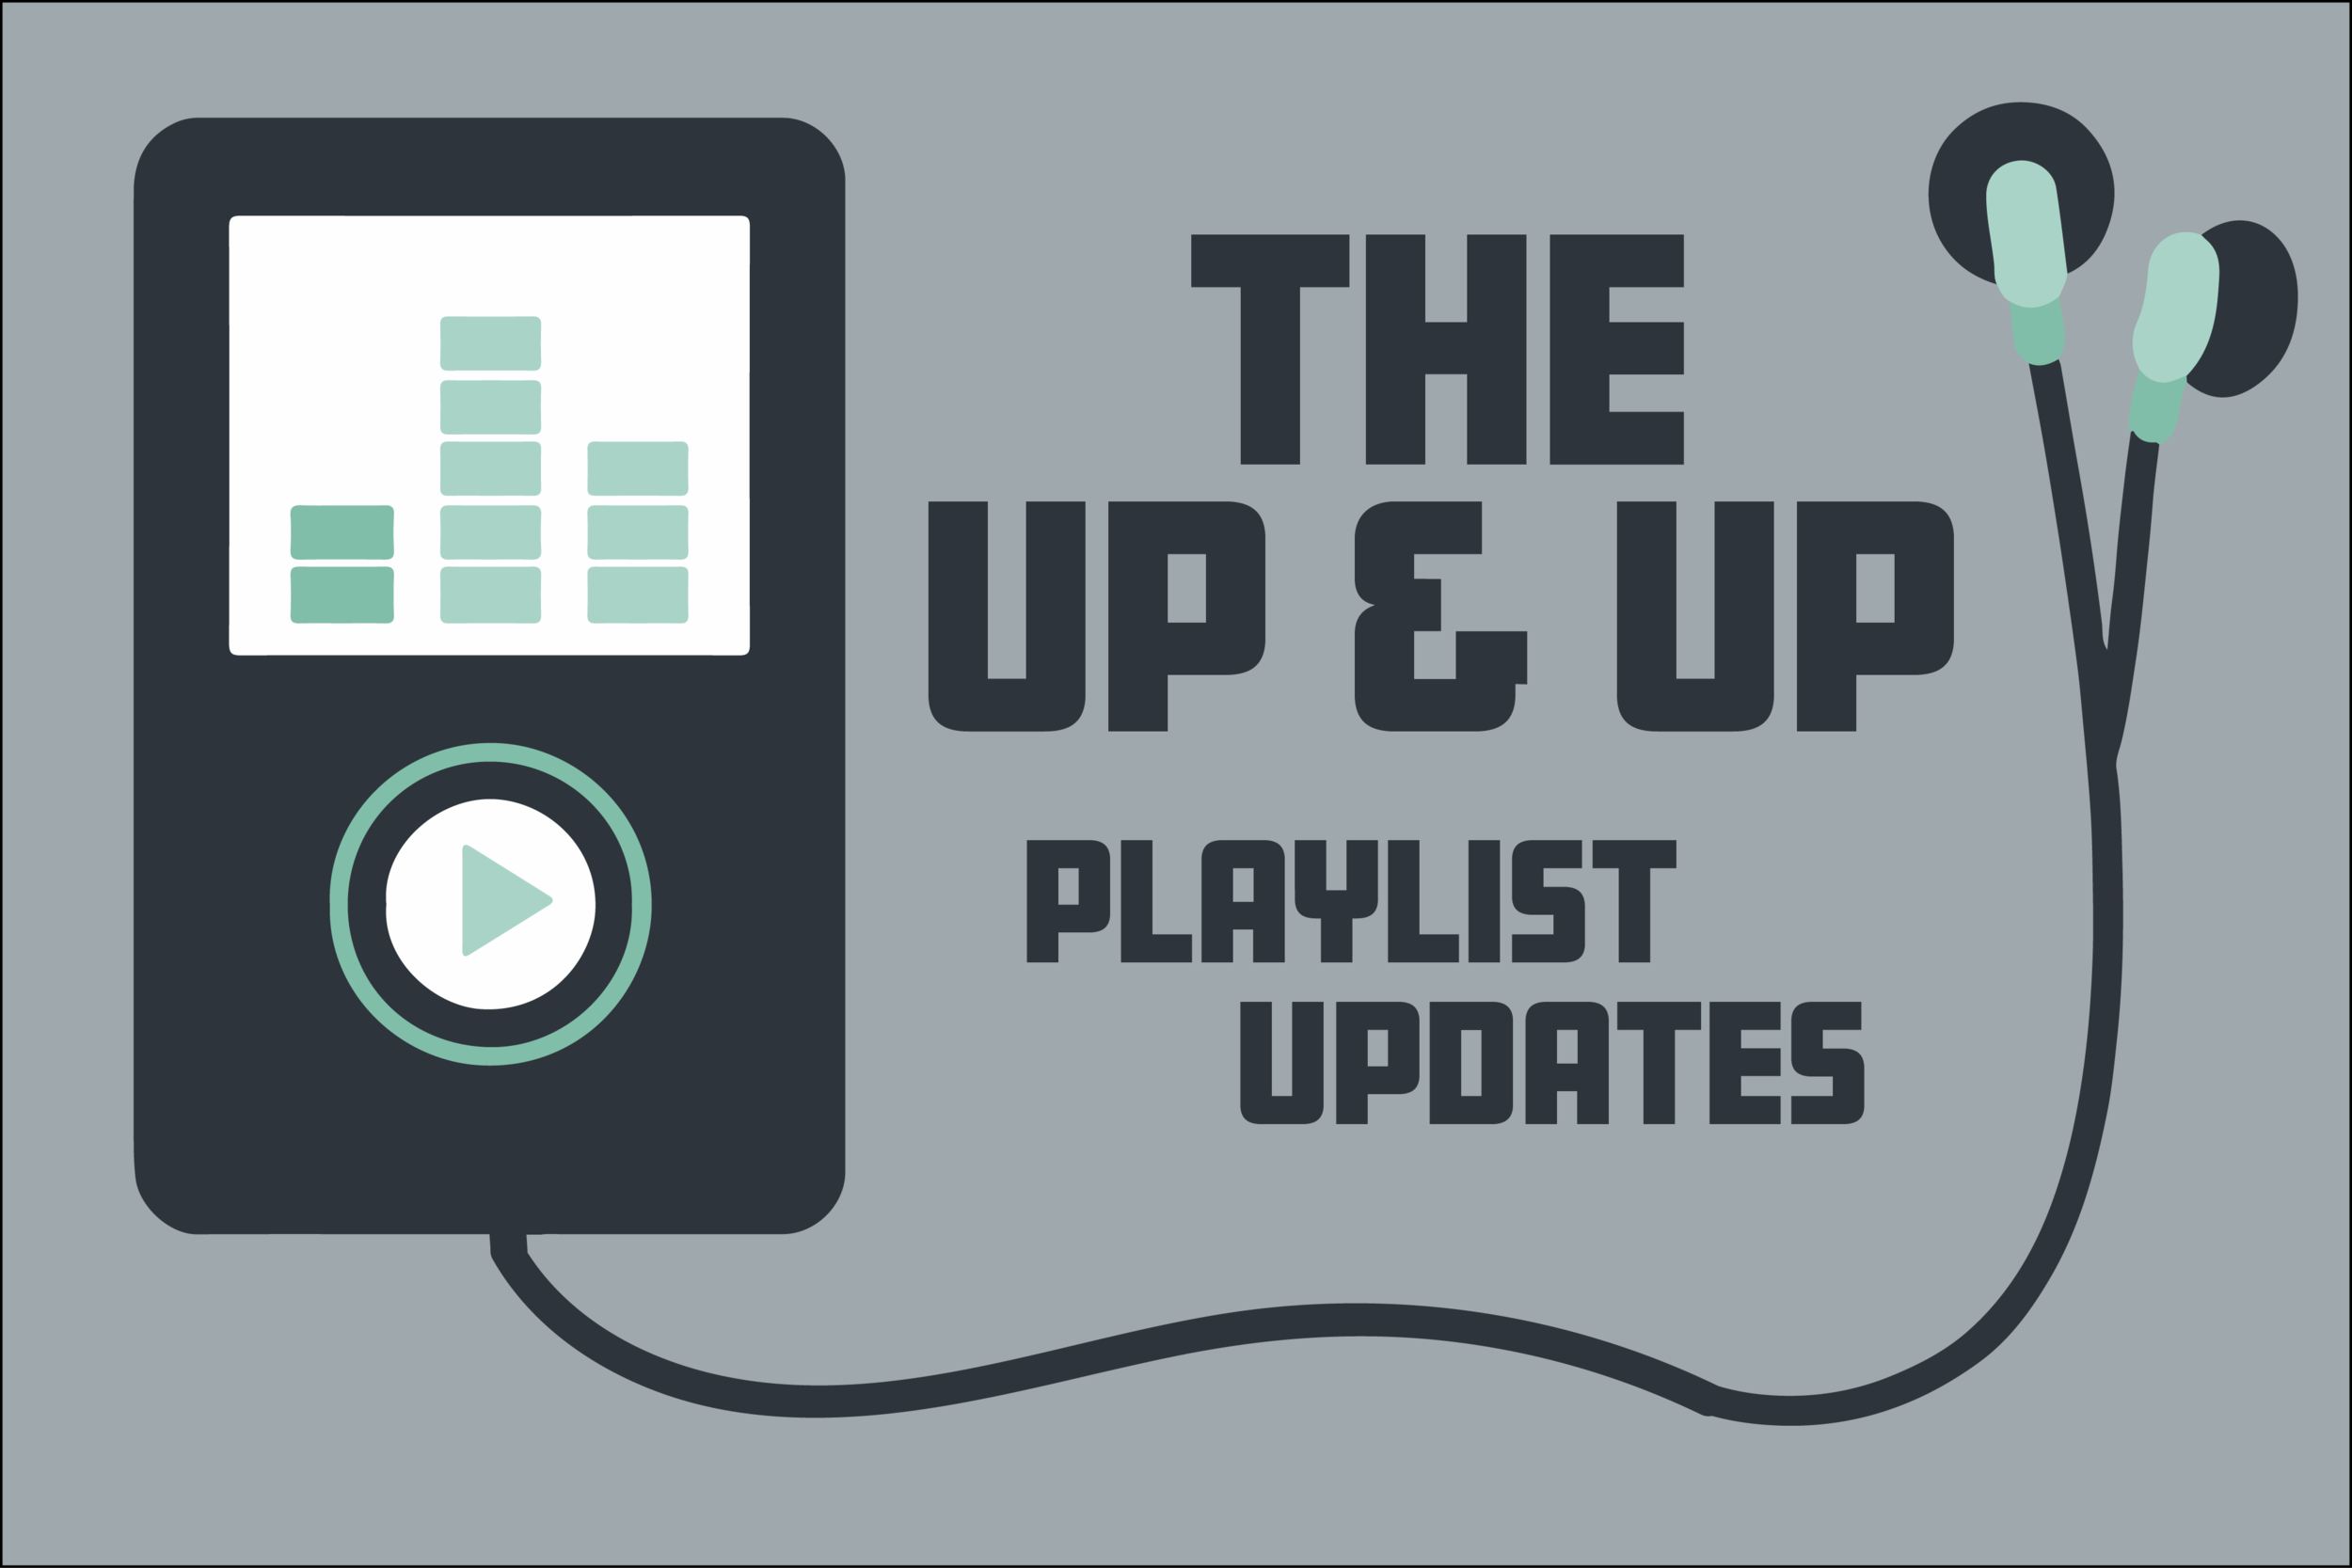 The Up&Up, The Change-Up's music podcast, will update weekly Spotify playlists to show our favorite artists some love. (Chase Manze)